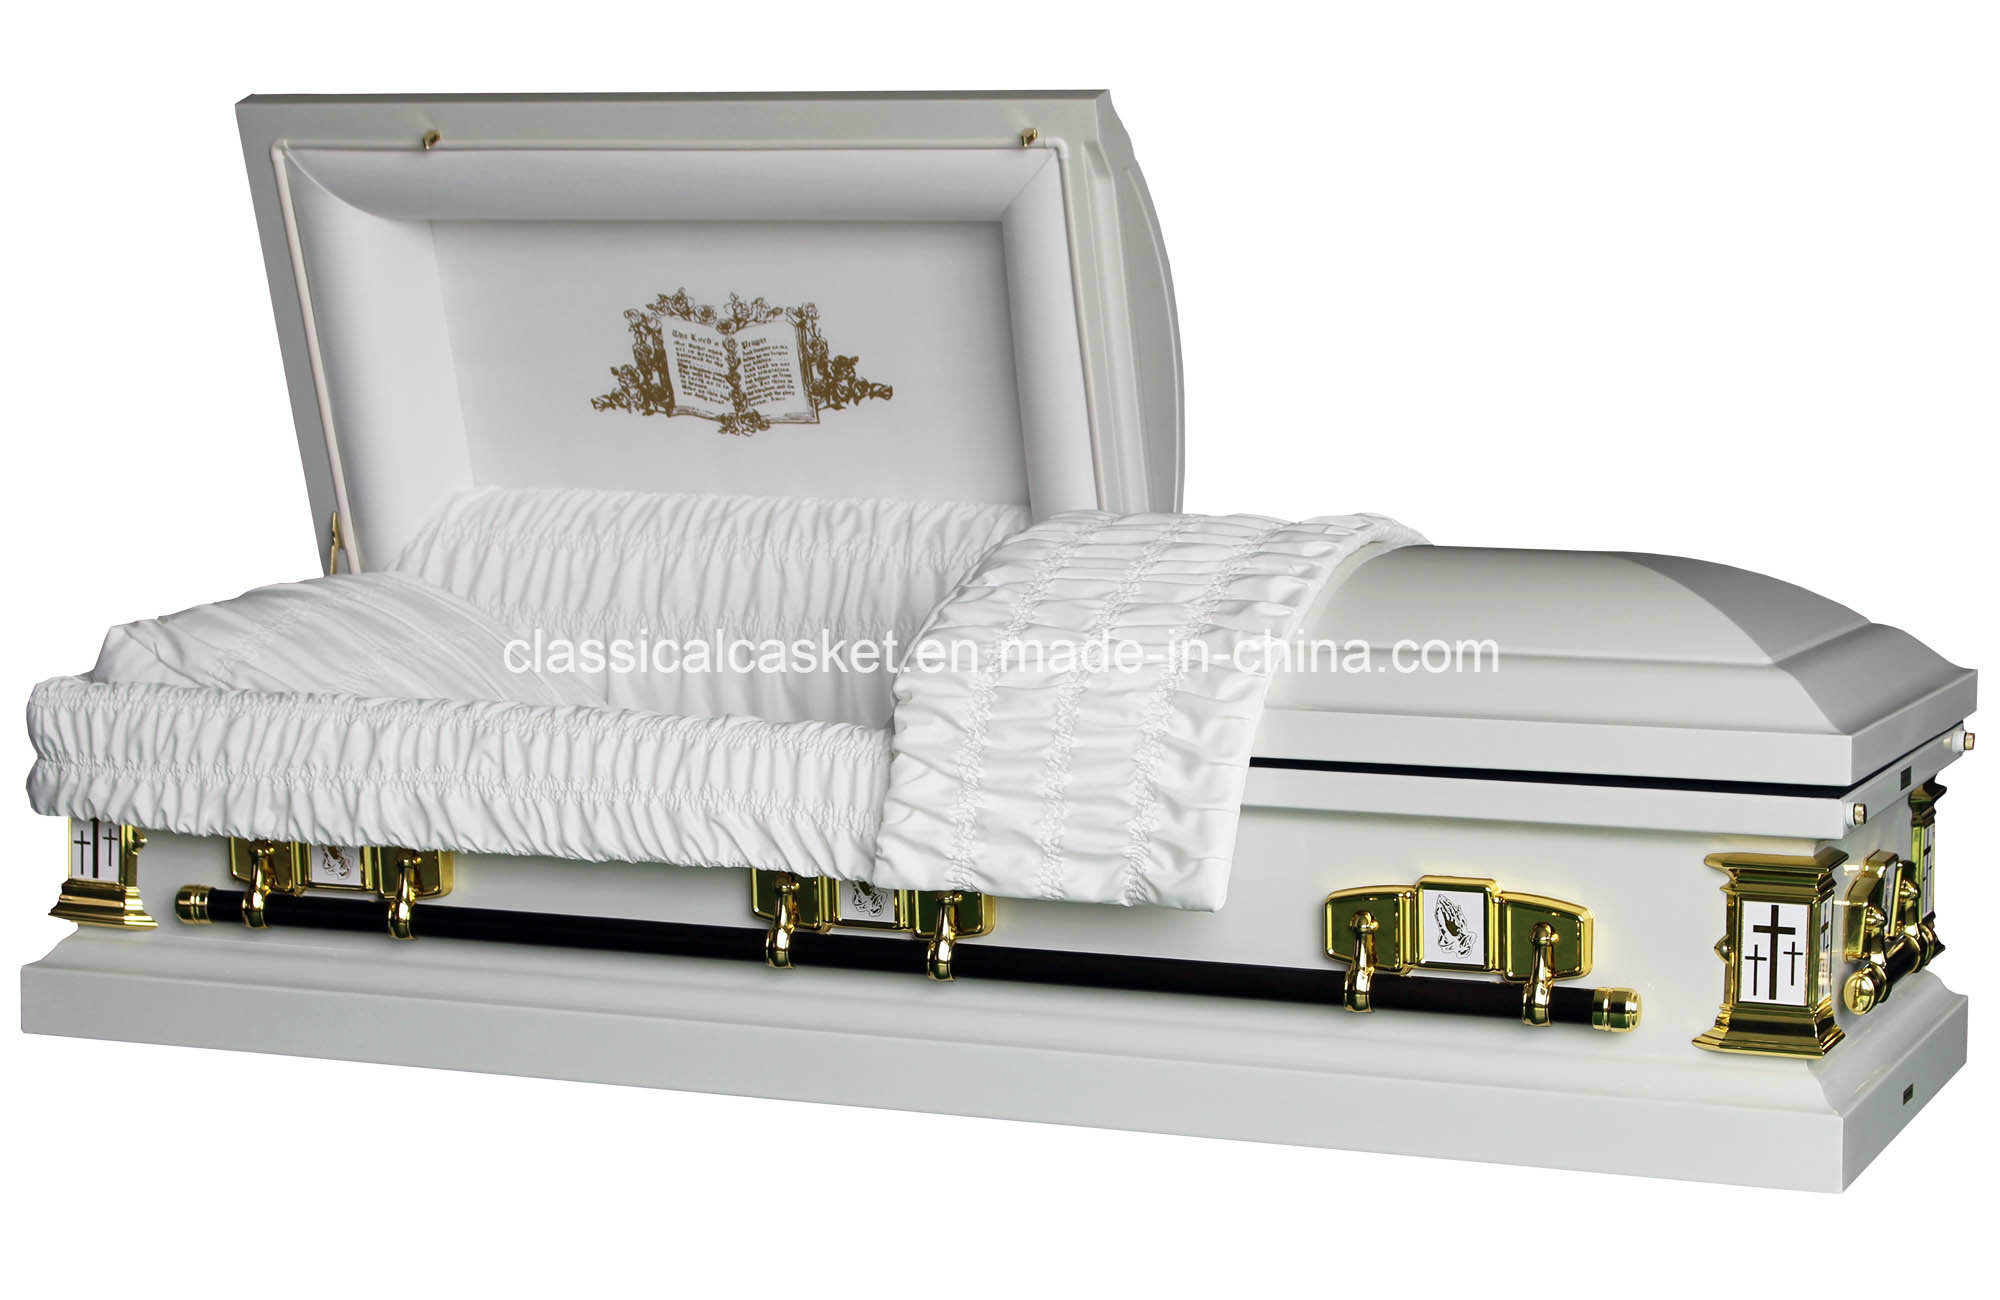 White Cross 18gaugse Steel Square Corner Casket